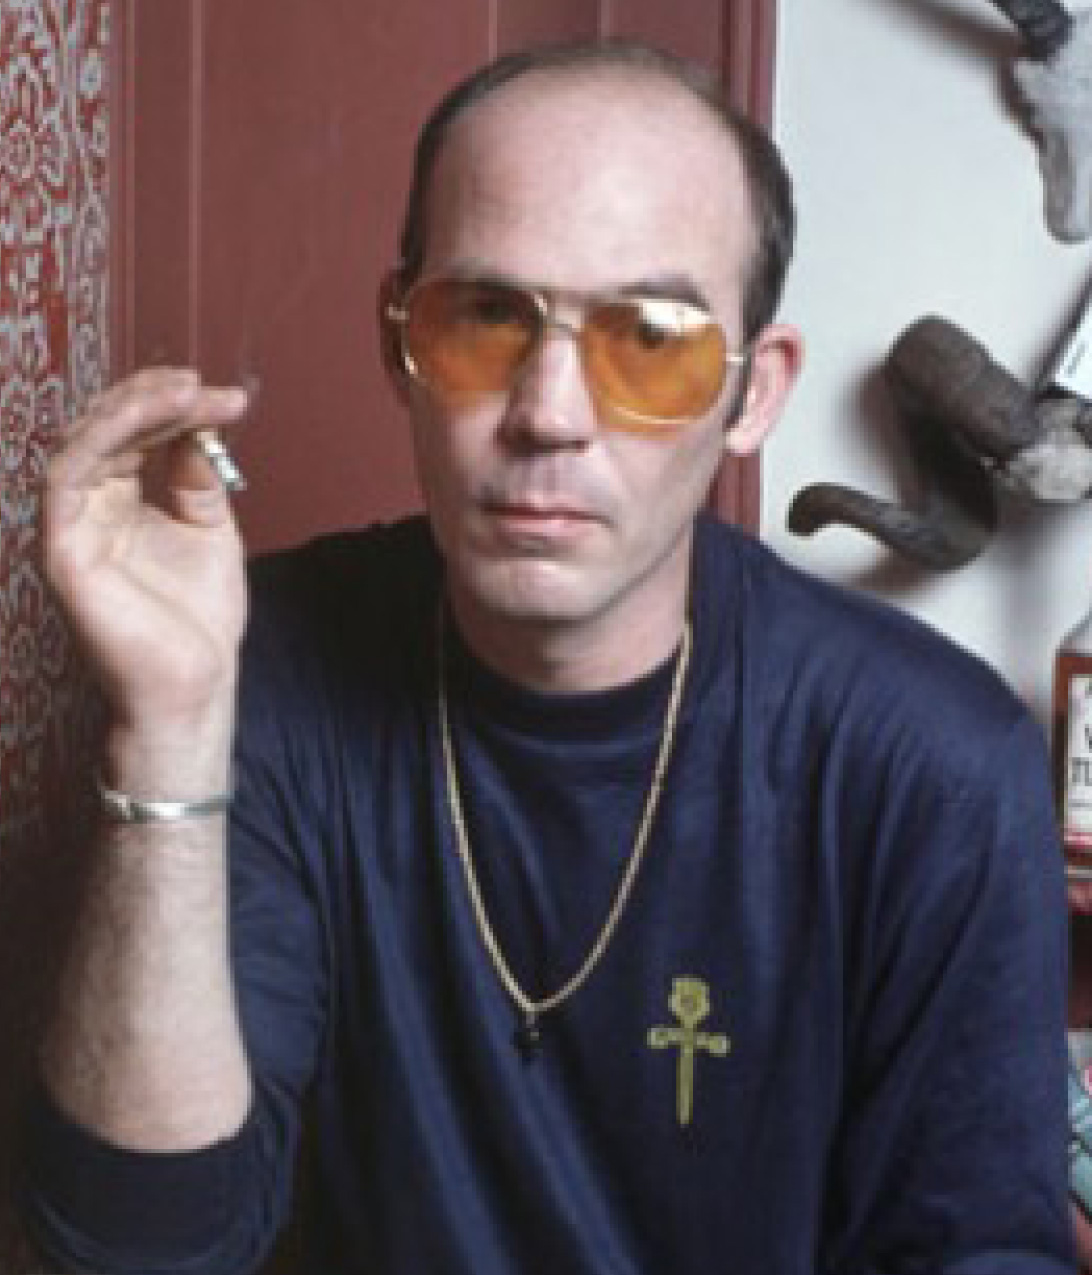 hunter s thompson essays check out this long essay on love boxing and hunter s thompson by john kaye over